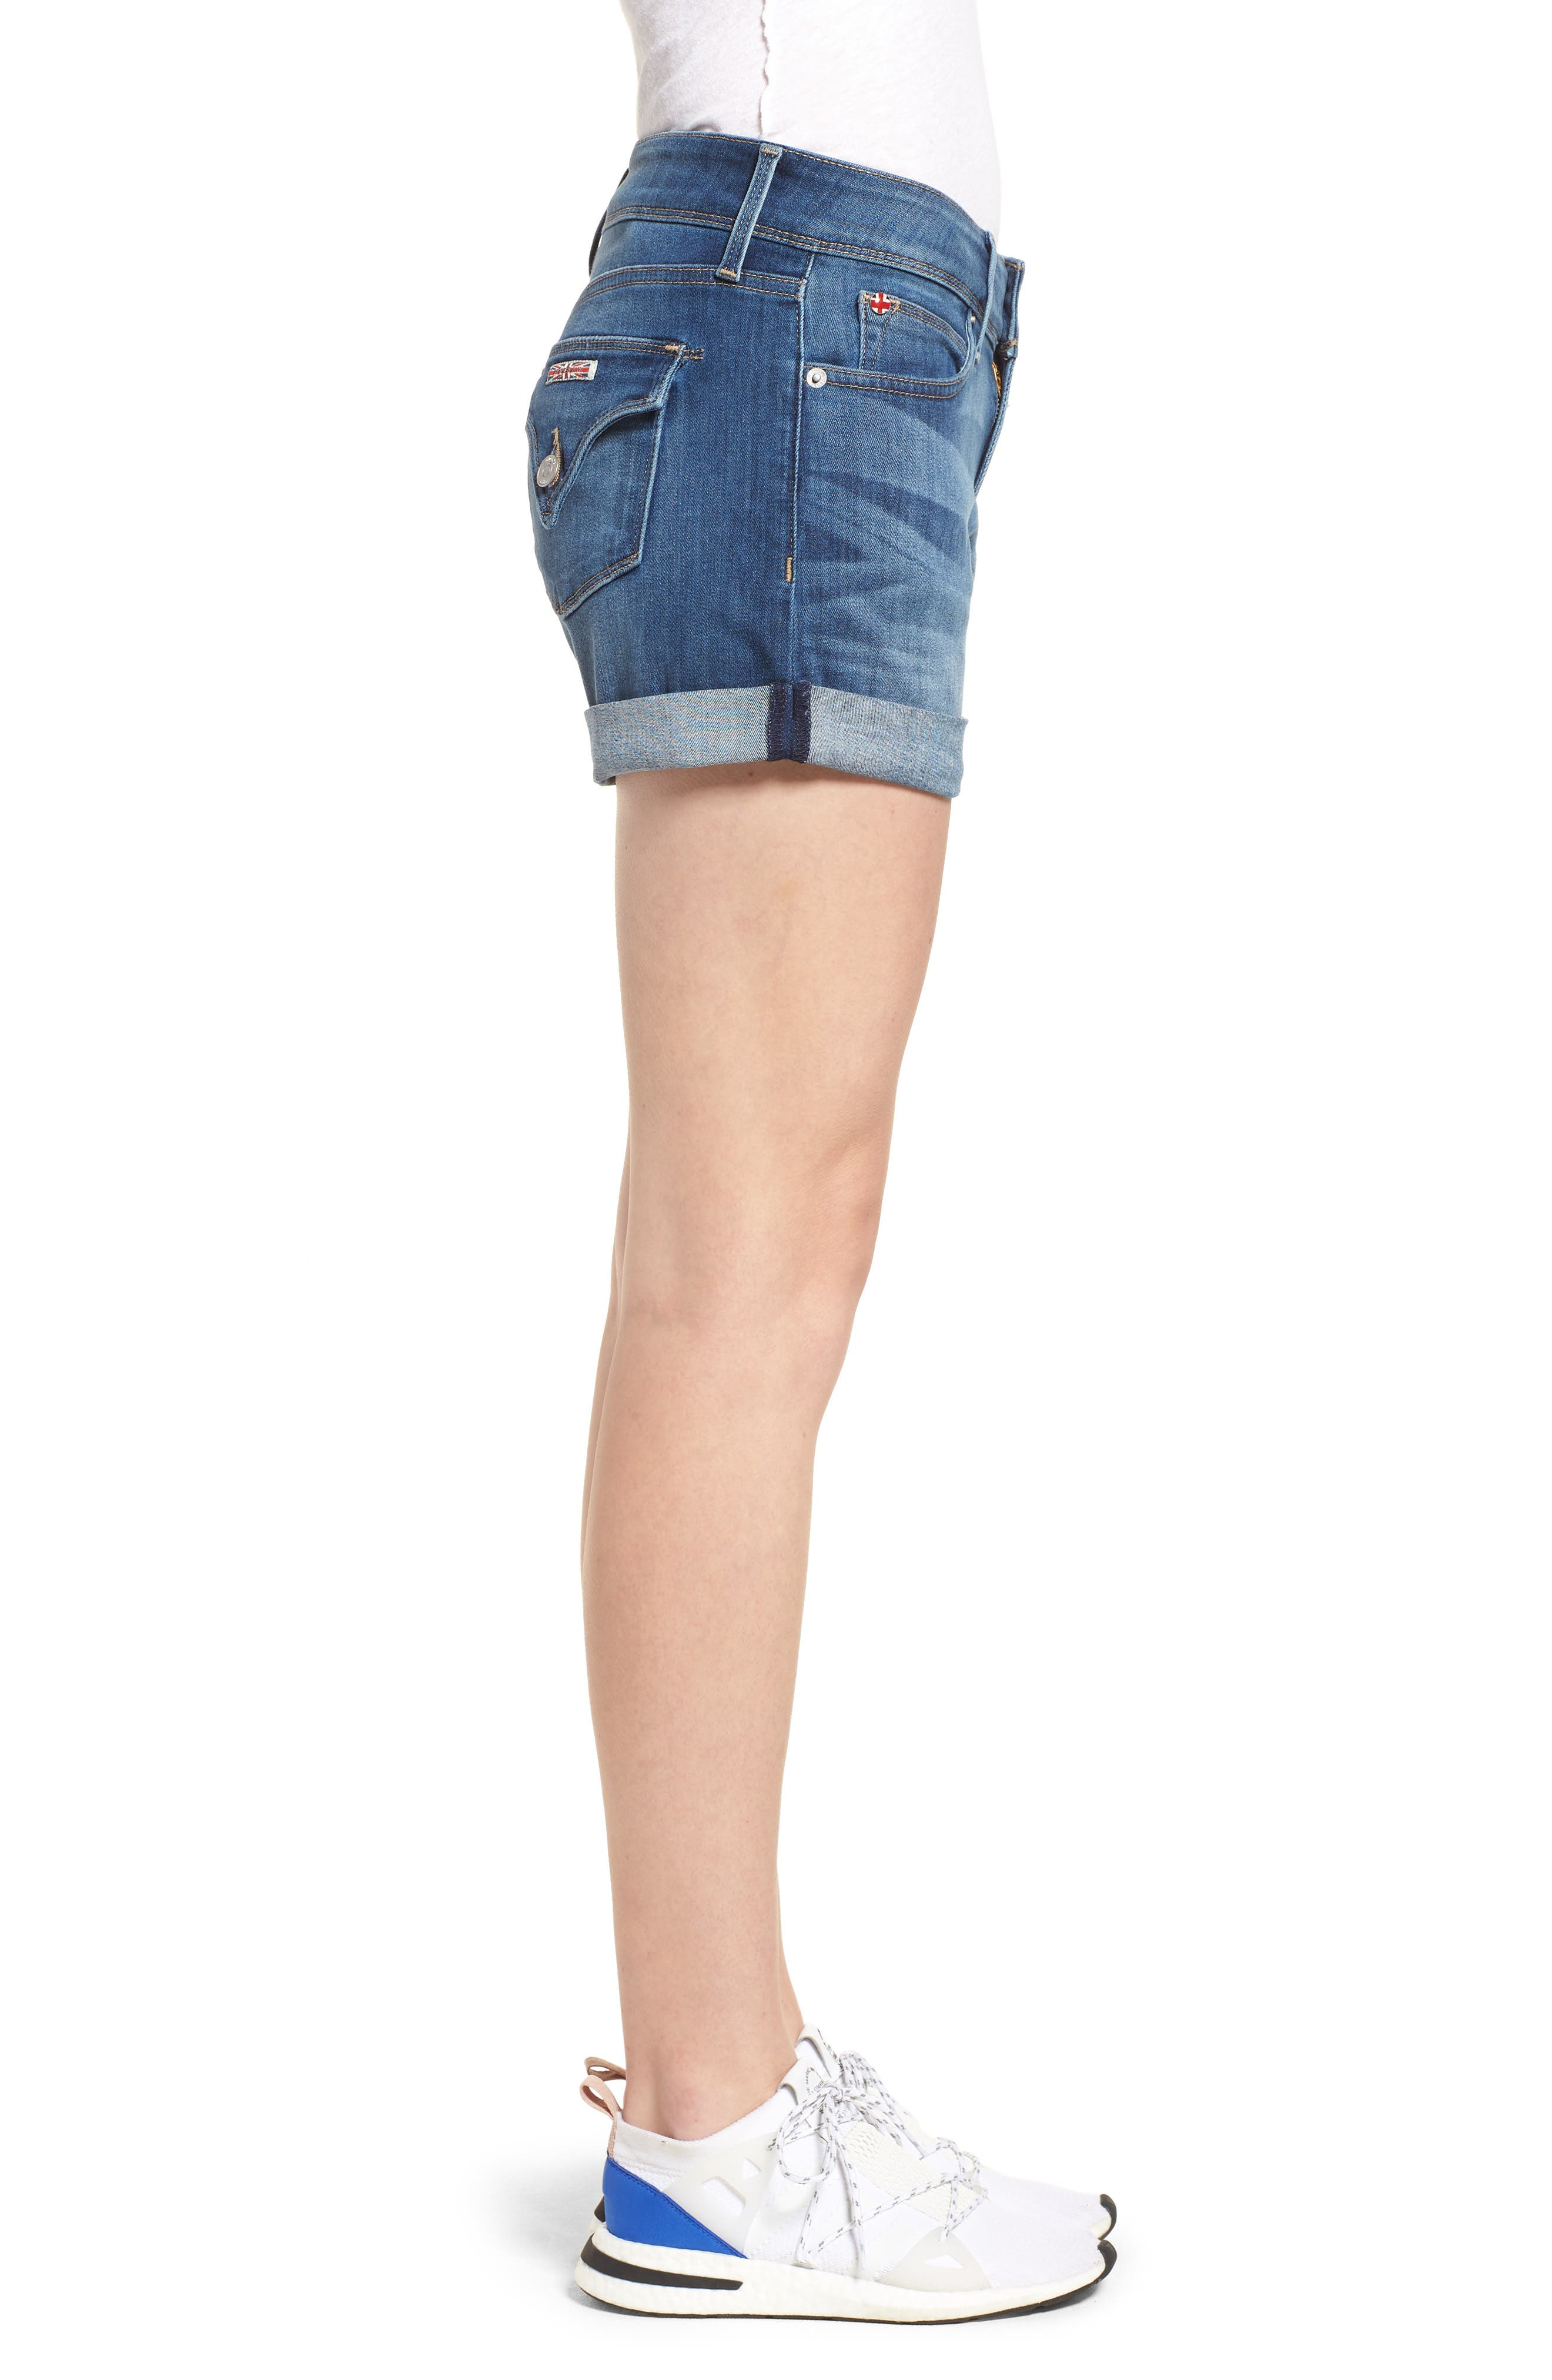 'Croxley' Cuffed Denim Shorts,                             Alternate thumbnail 16, color,